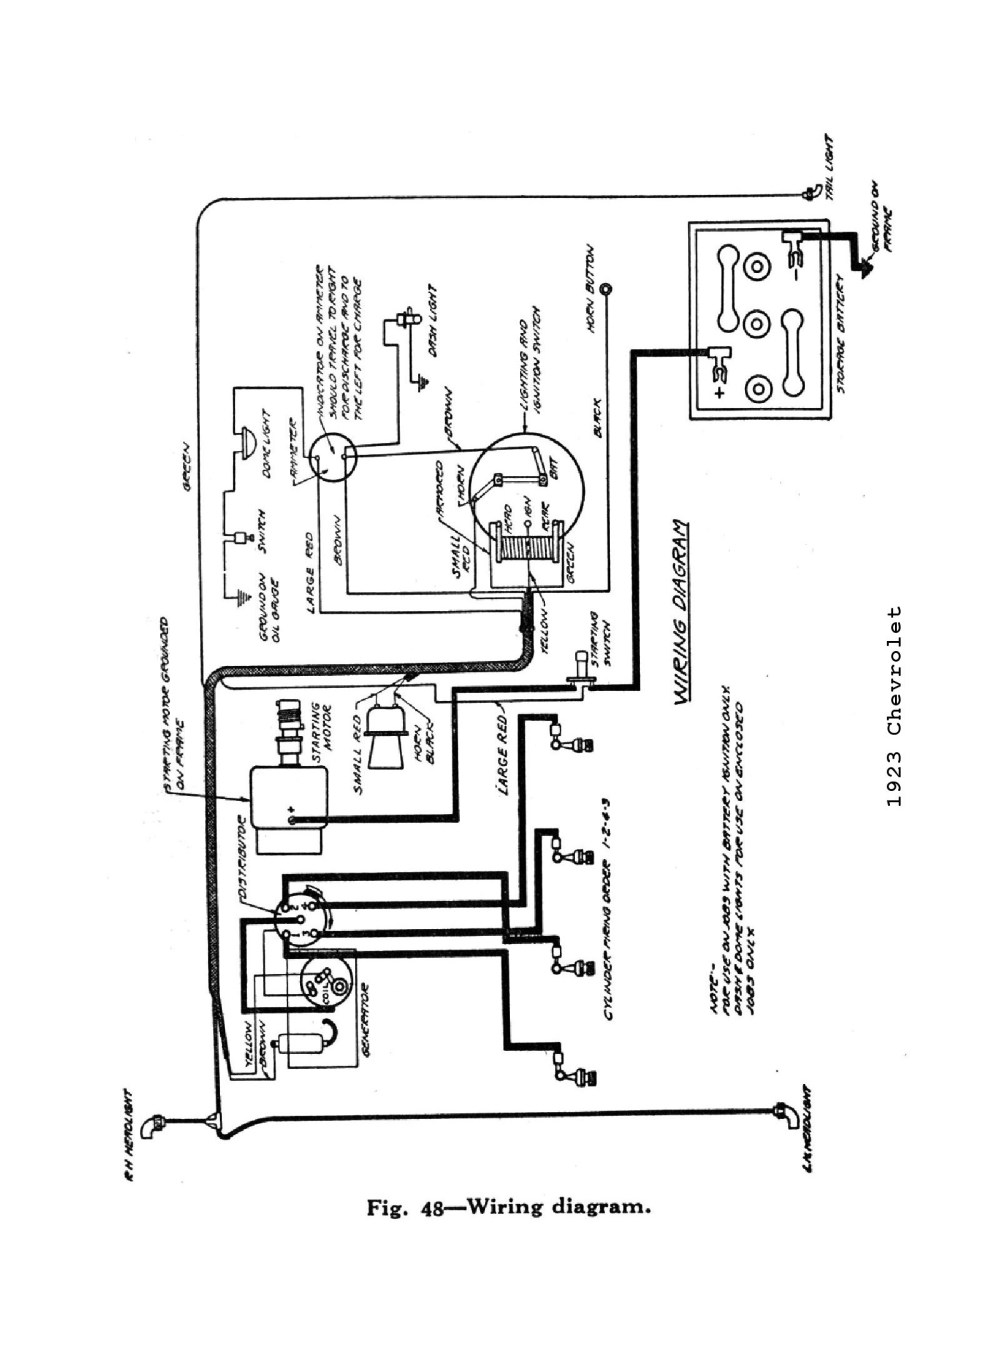 medium resolution of ignition circuit diagram for the 1955 nash 6 cylinder all modelswiring diagrams of 1957 hudson all